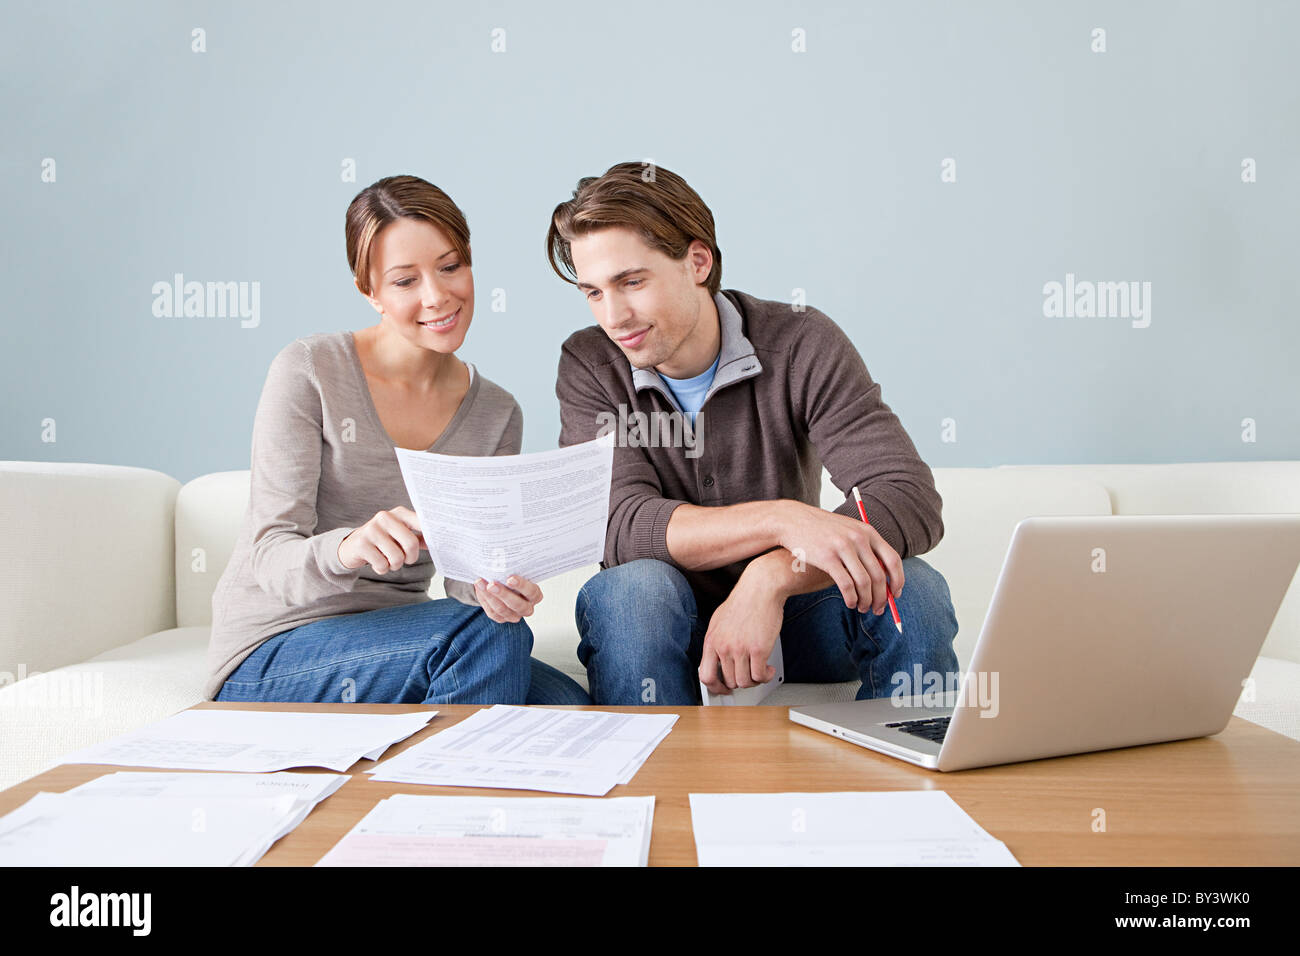 Young couple using computer and doing paperwork - Stock Image